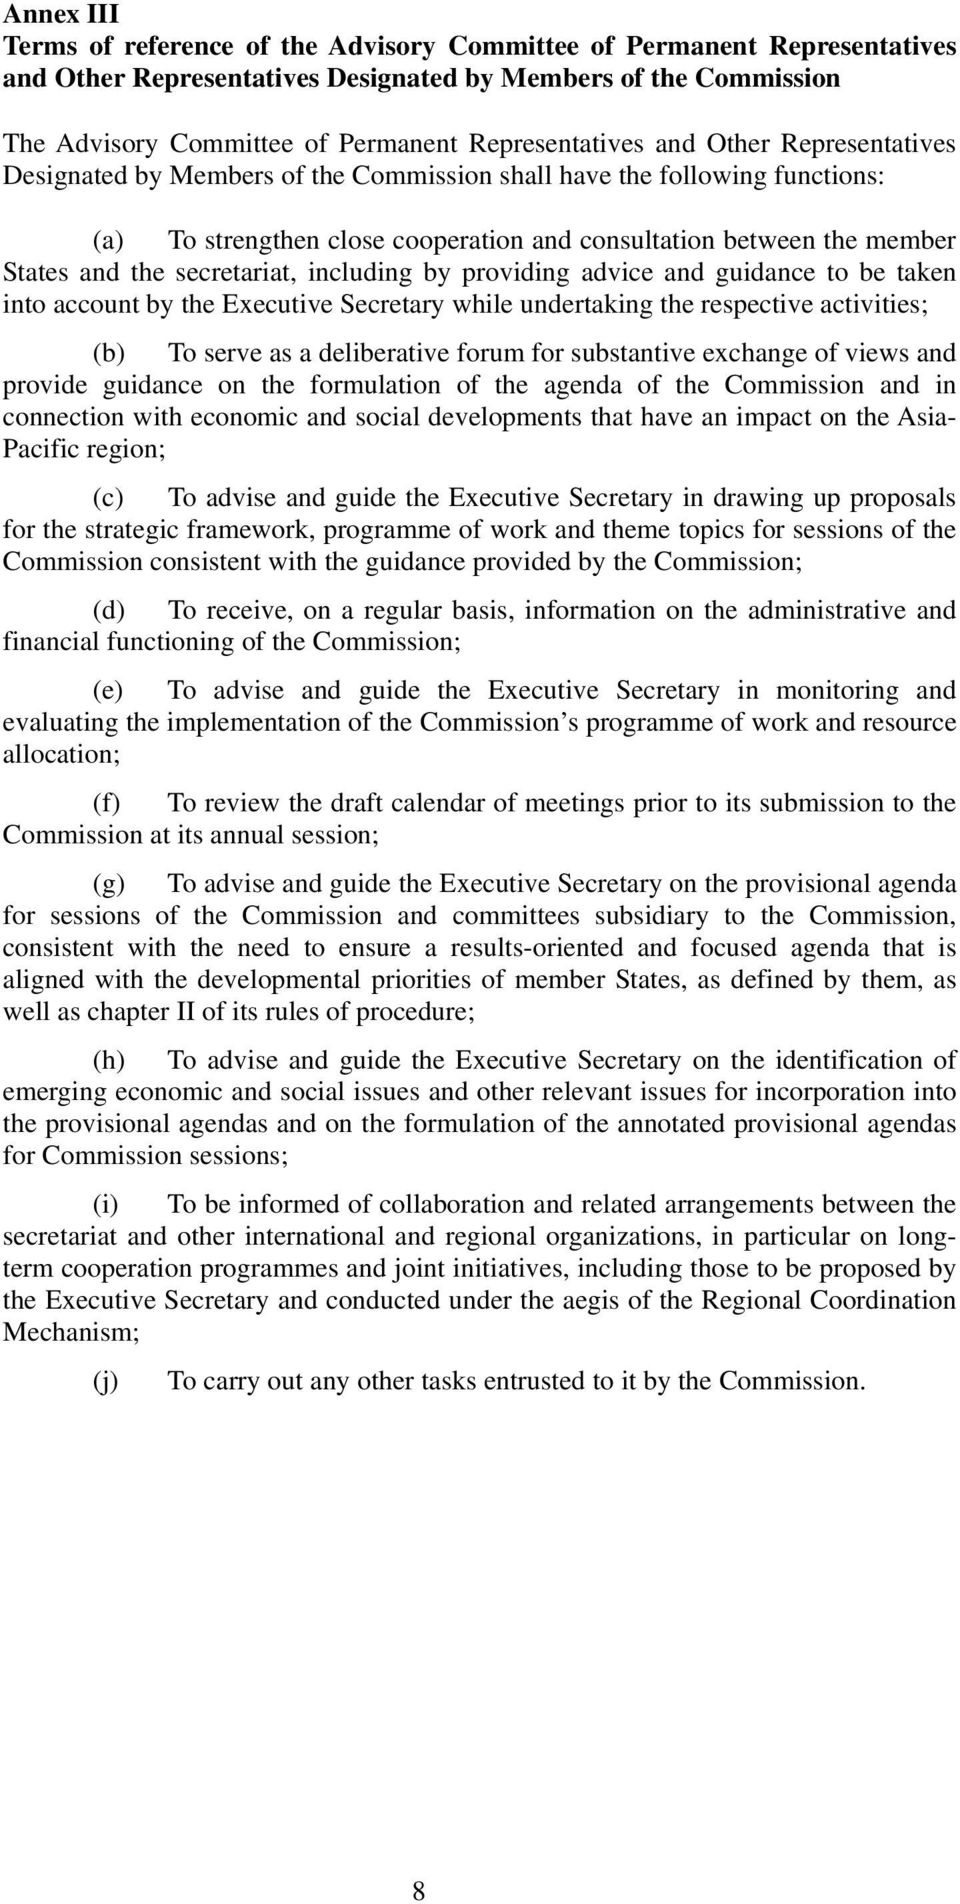 and the secretariat, including by providing advice and guidance to be taken into account by the Executive Secretary while undertaking the respective activities; (b) To serve as a deliberative forum